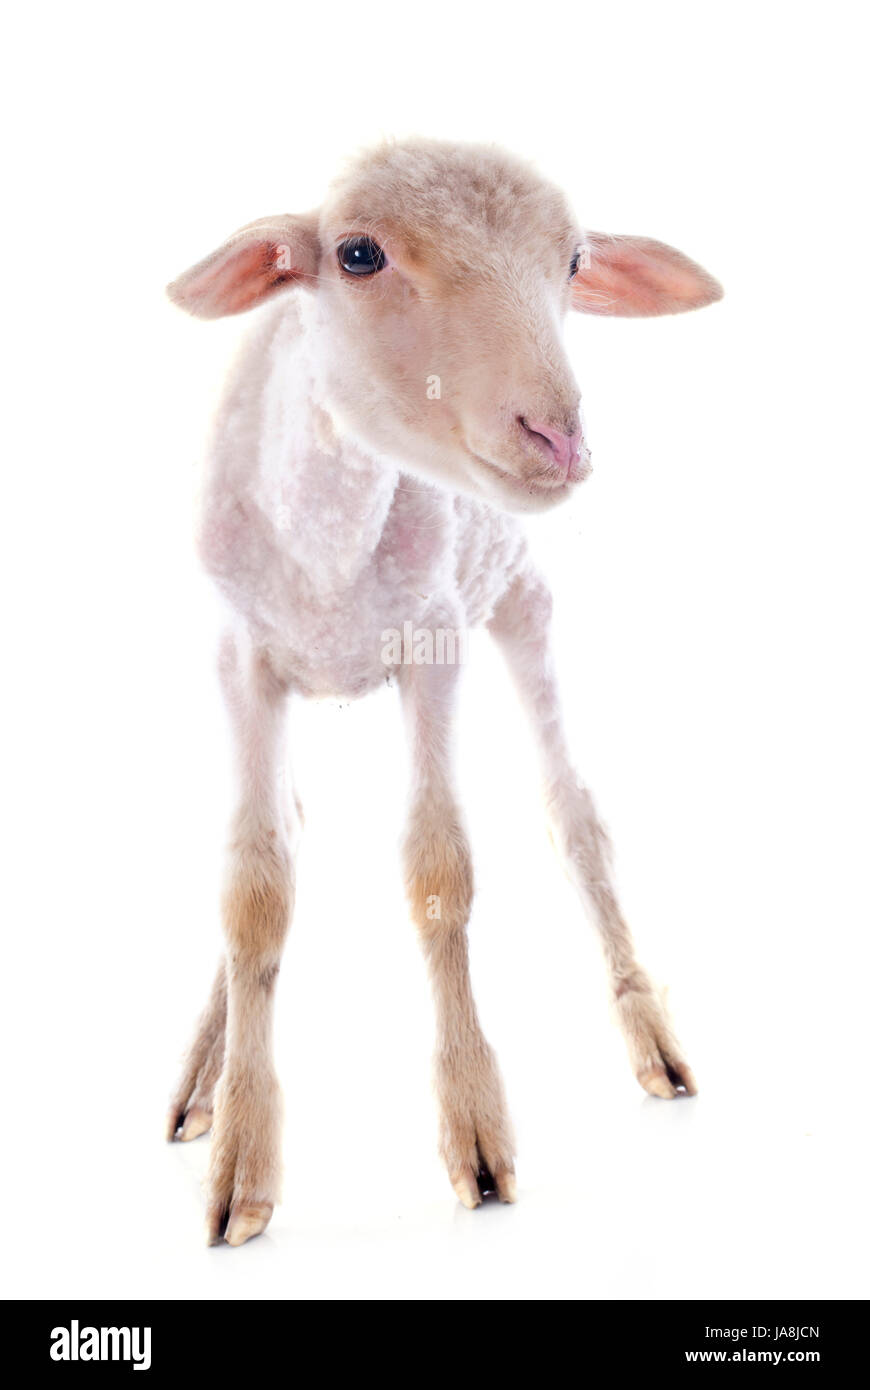 young lamb in front of white background - Stock Image